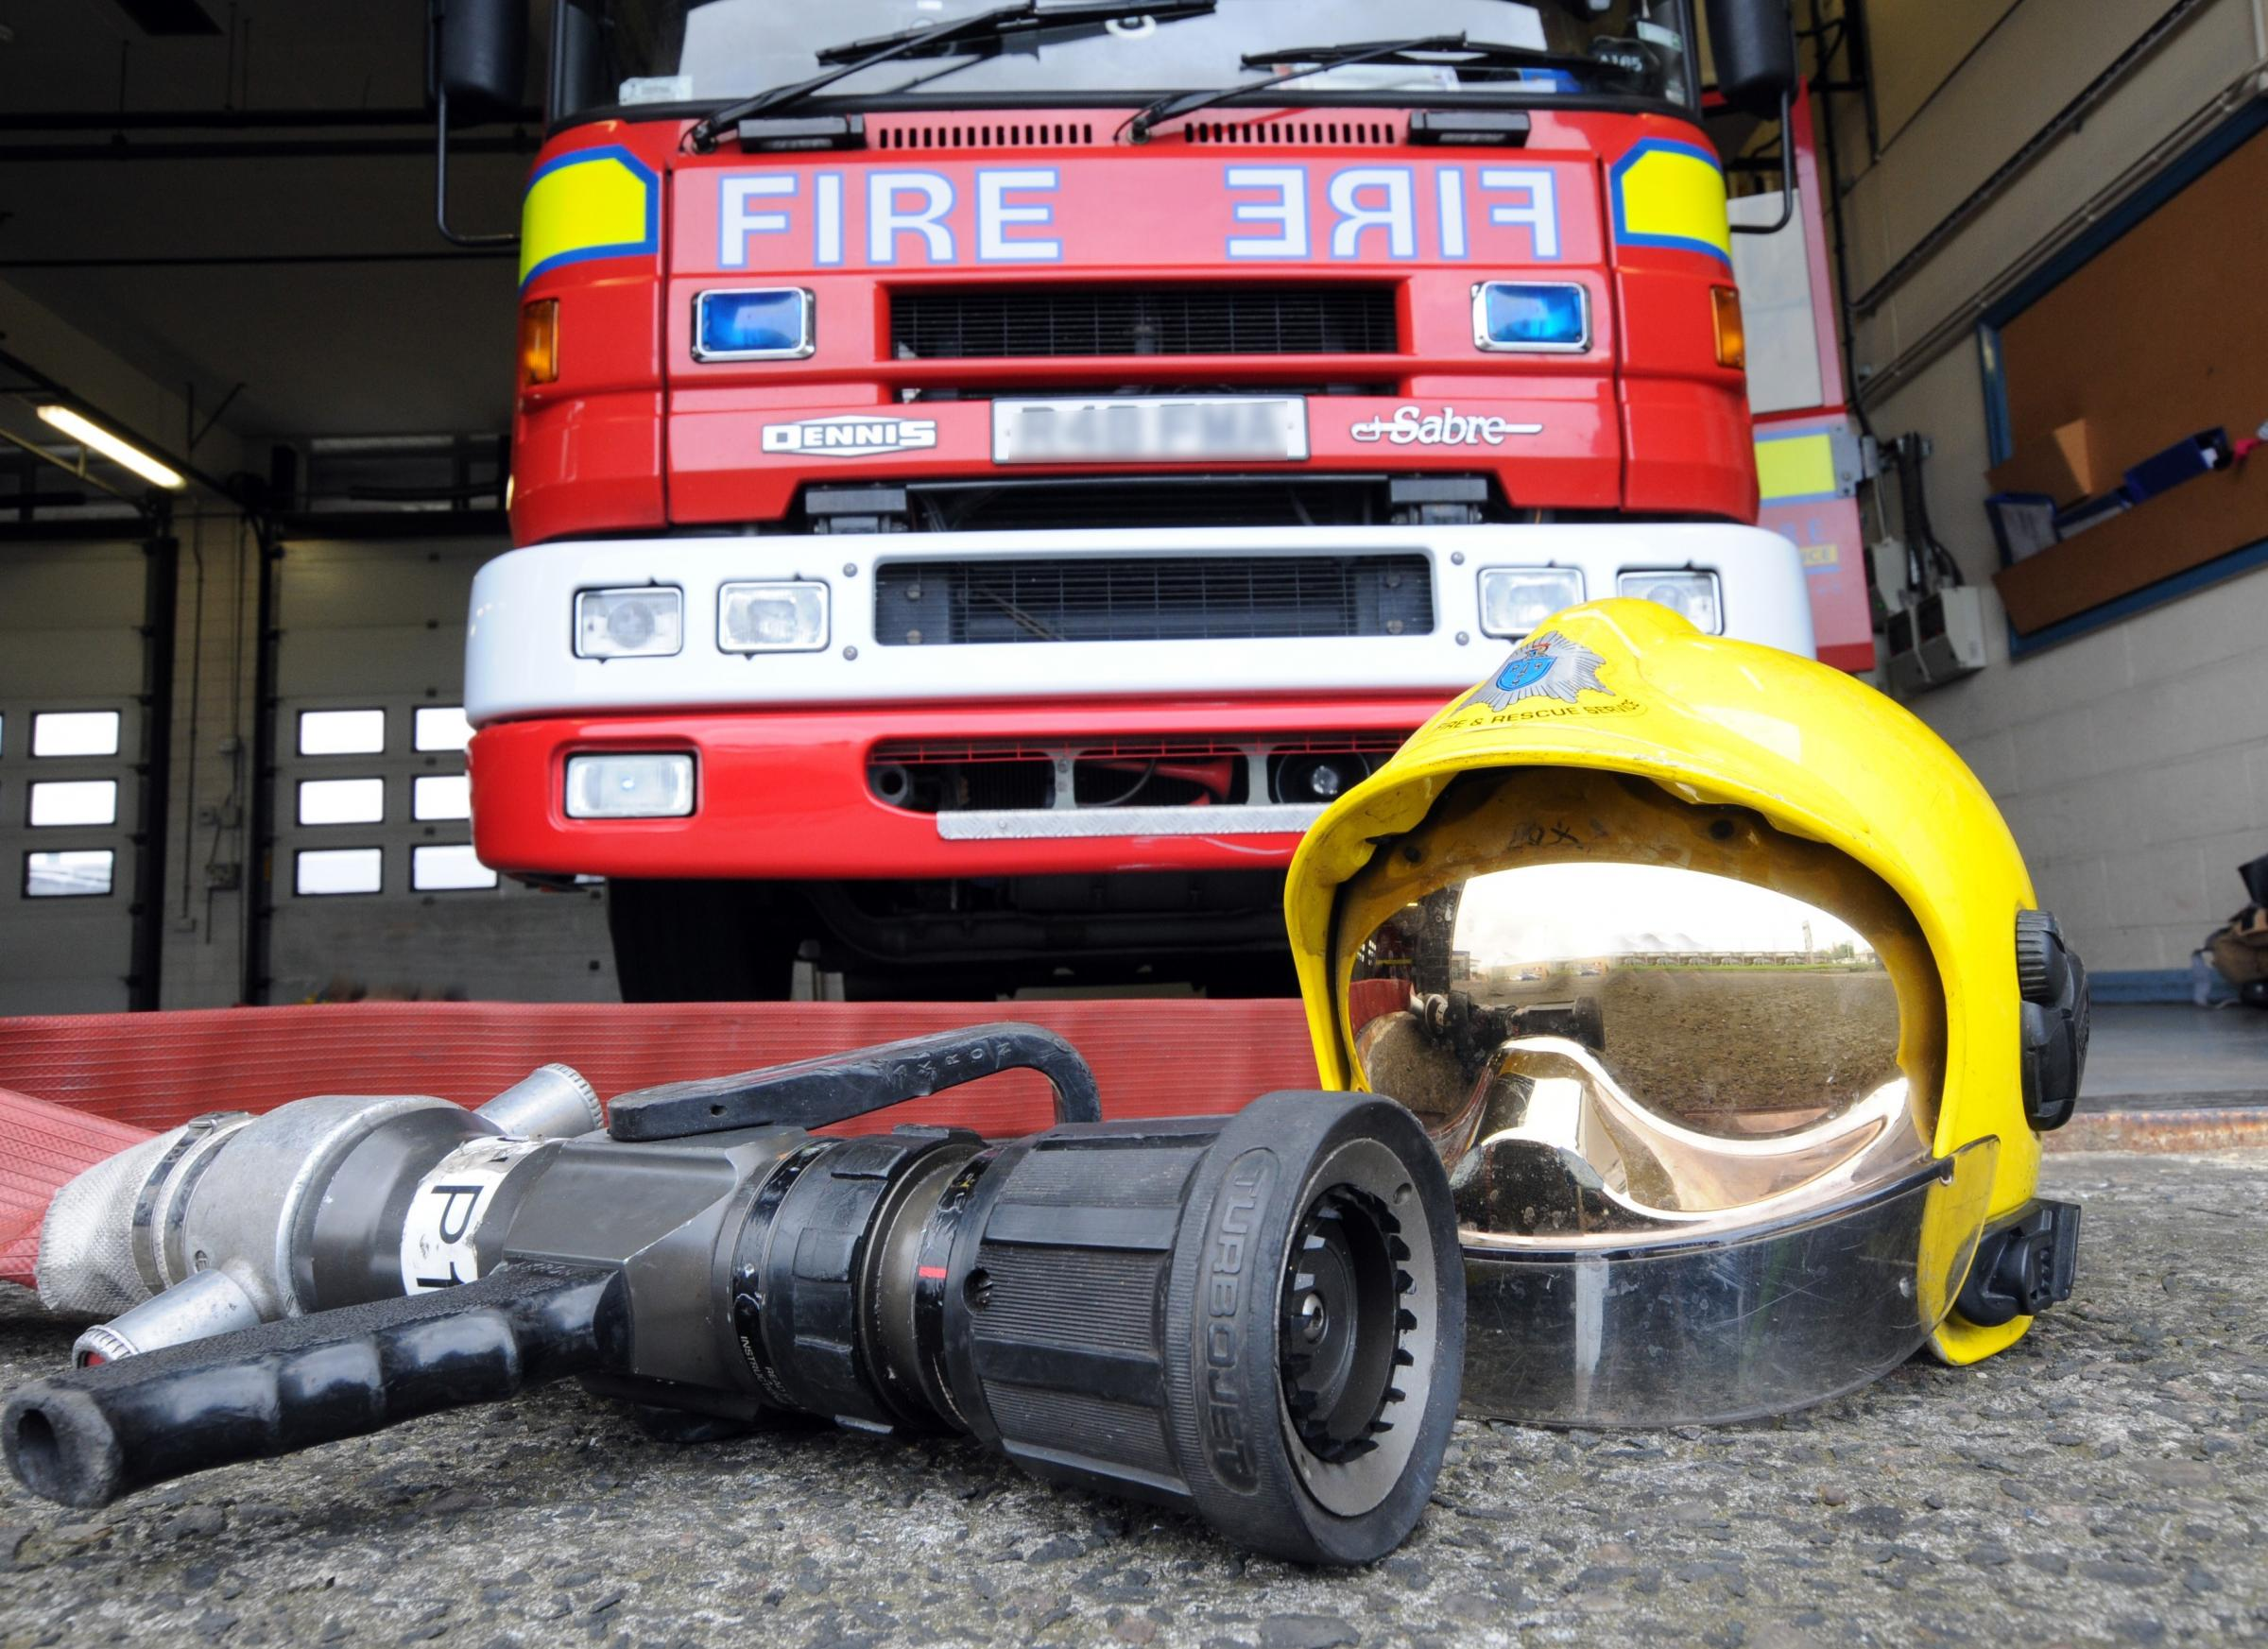 Cheshire fire brigade stock photo.